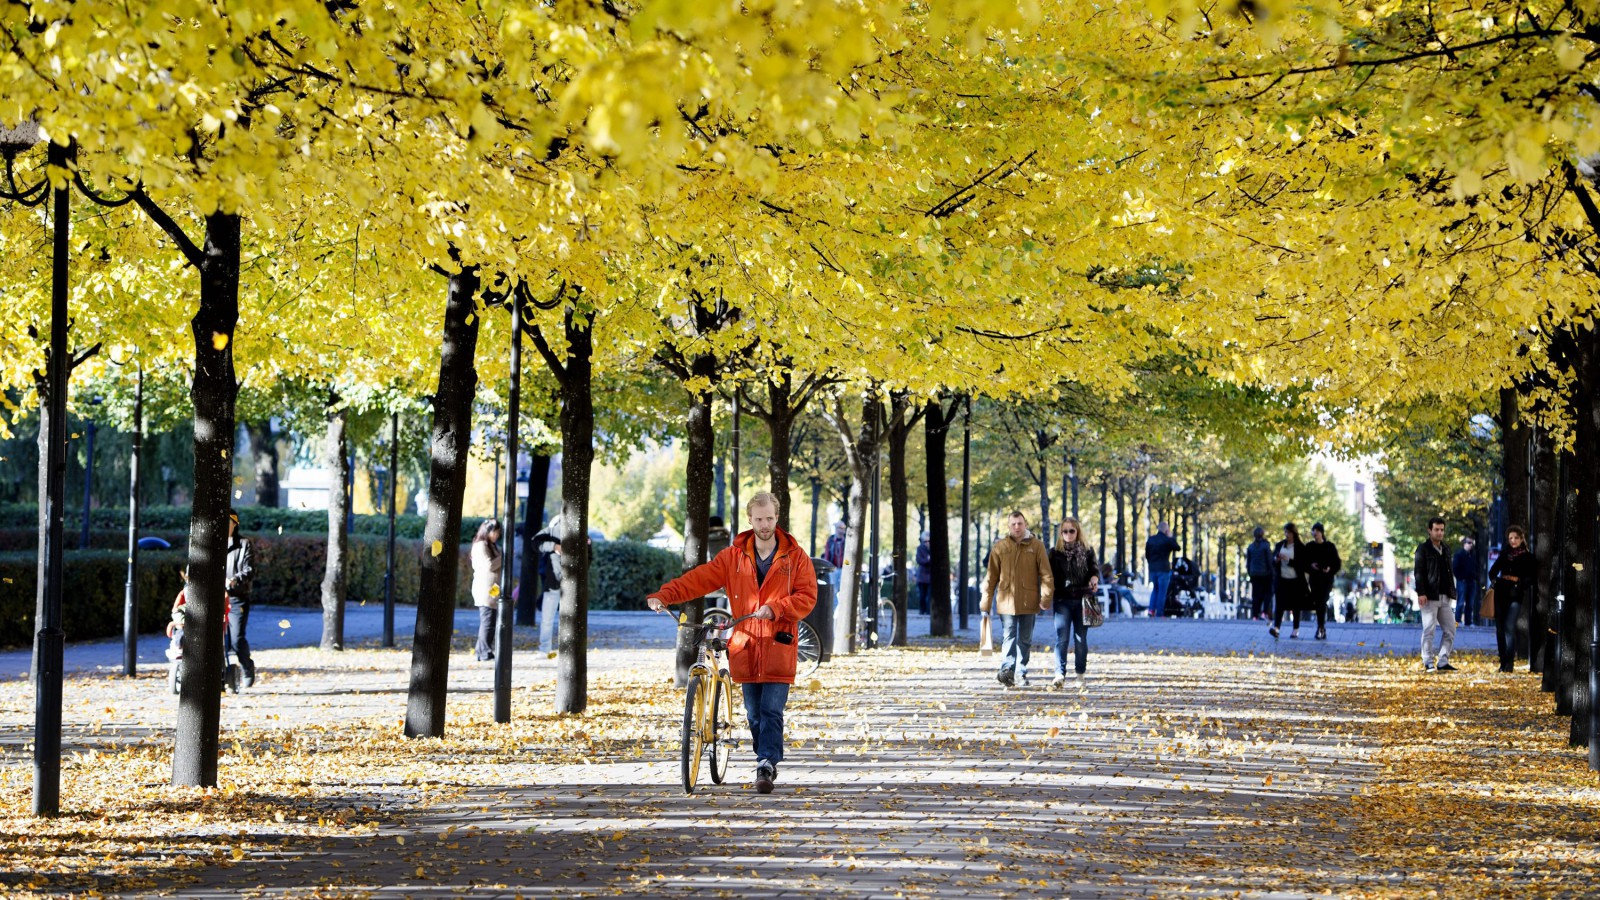 A man pushes his bicycle on a sunny autumn day.